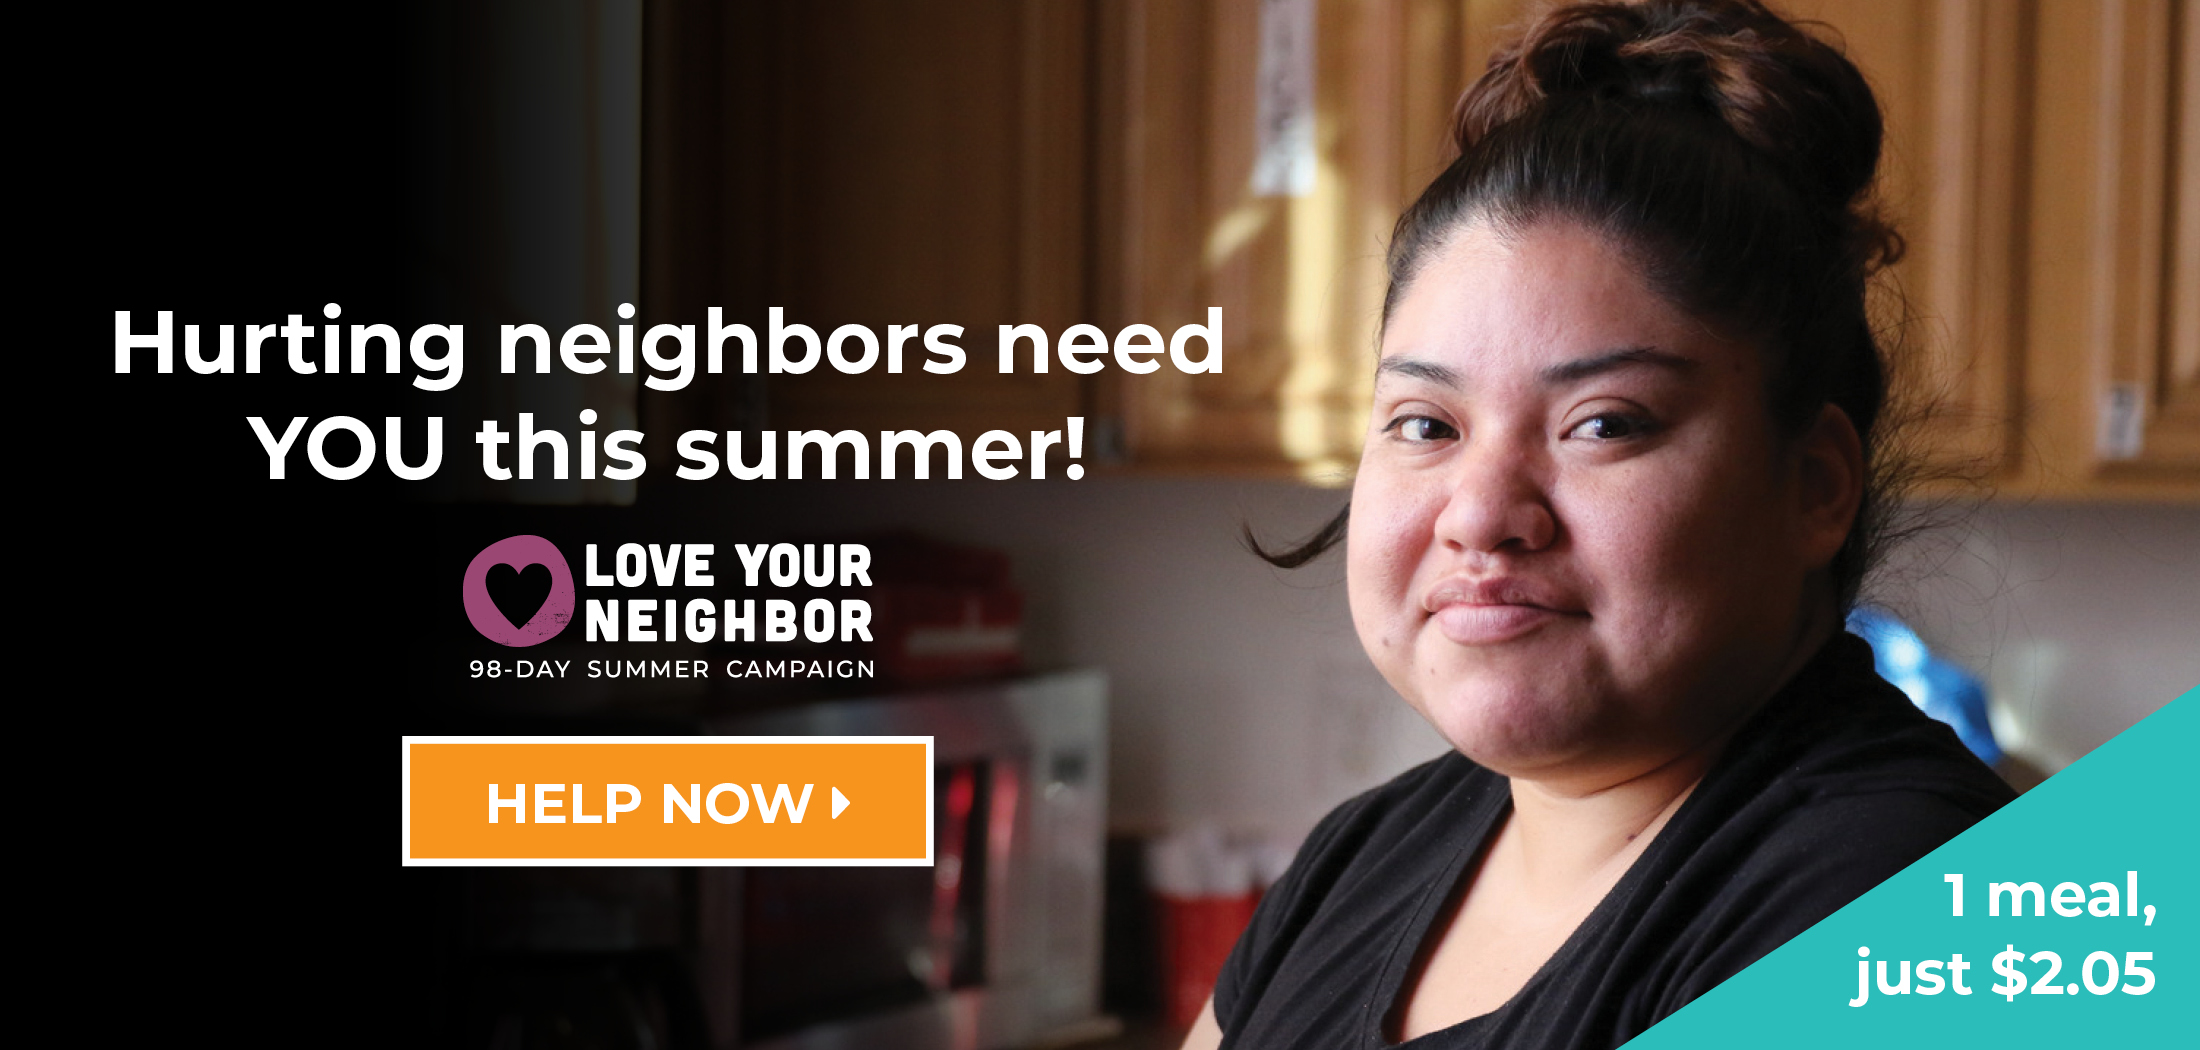 Hurting neighbors need your help this summer